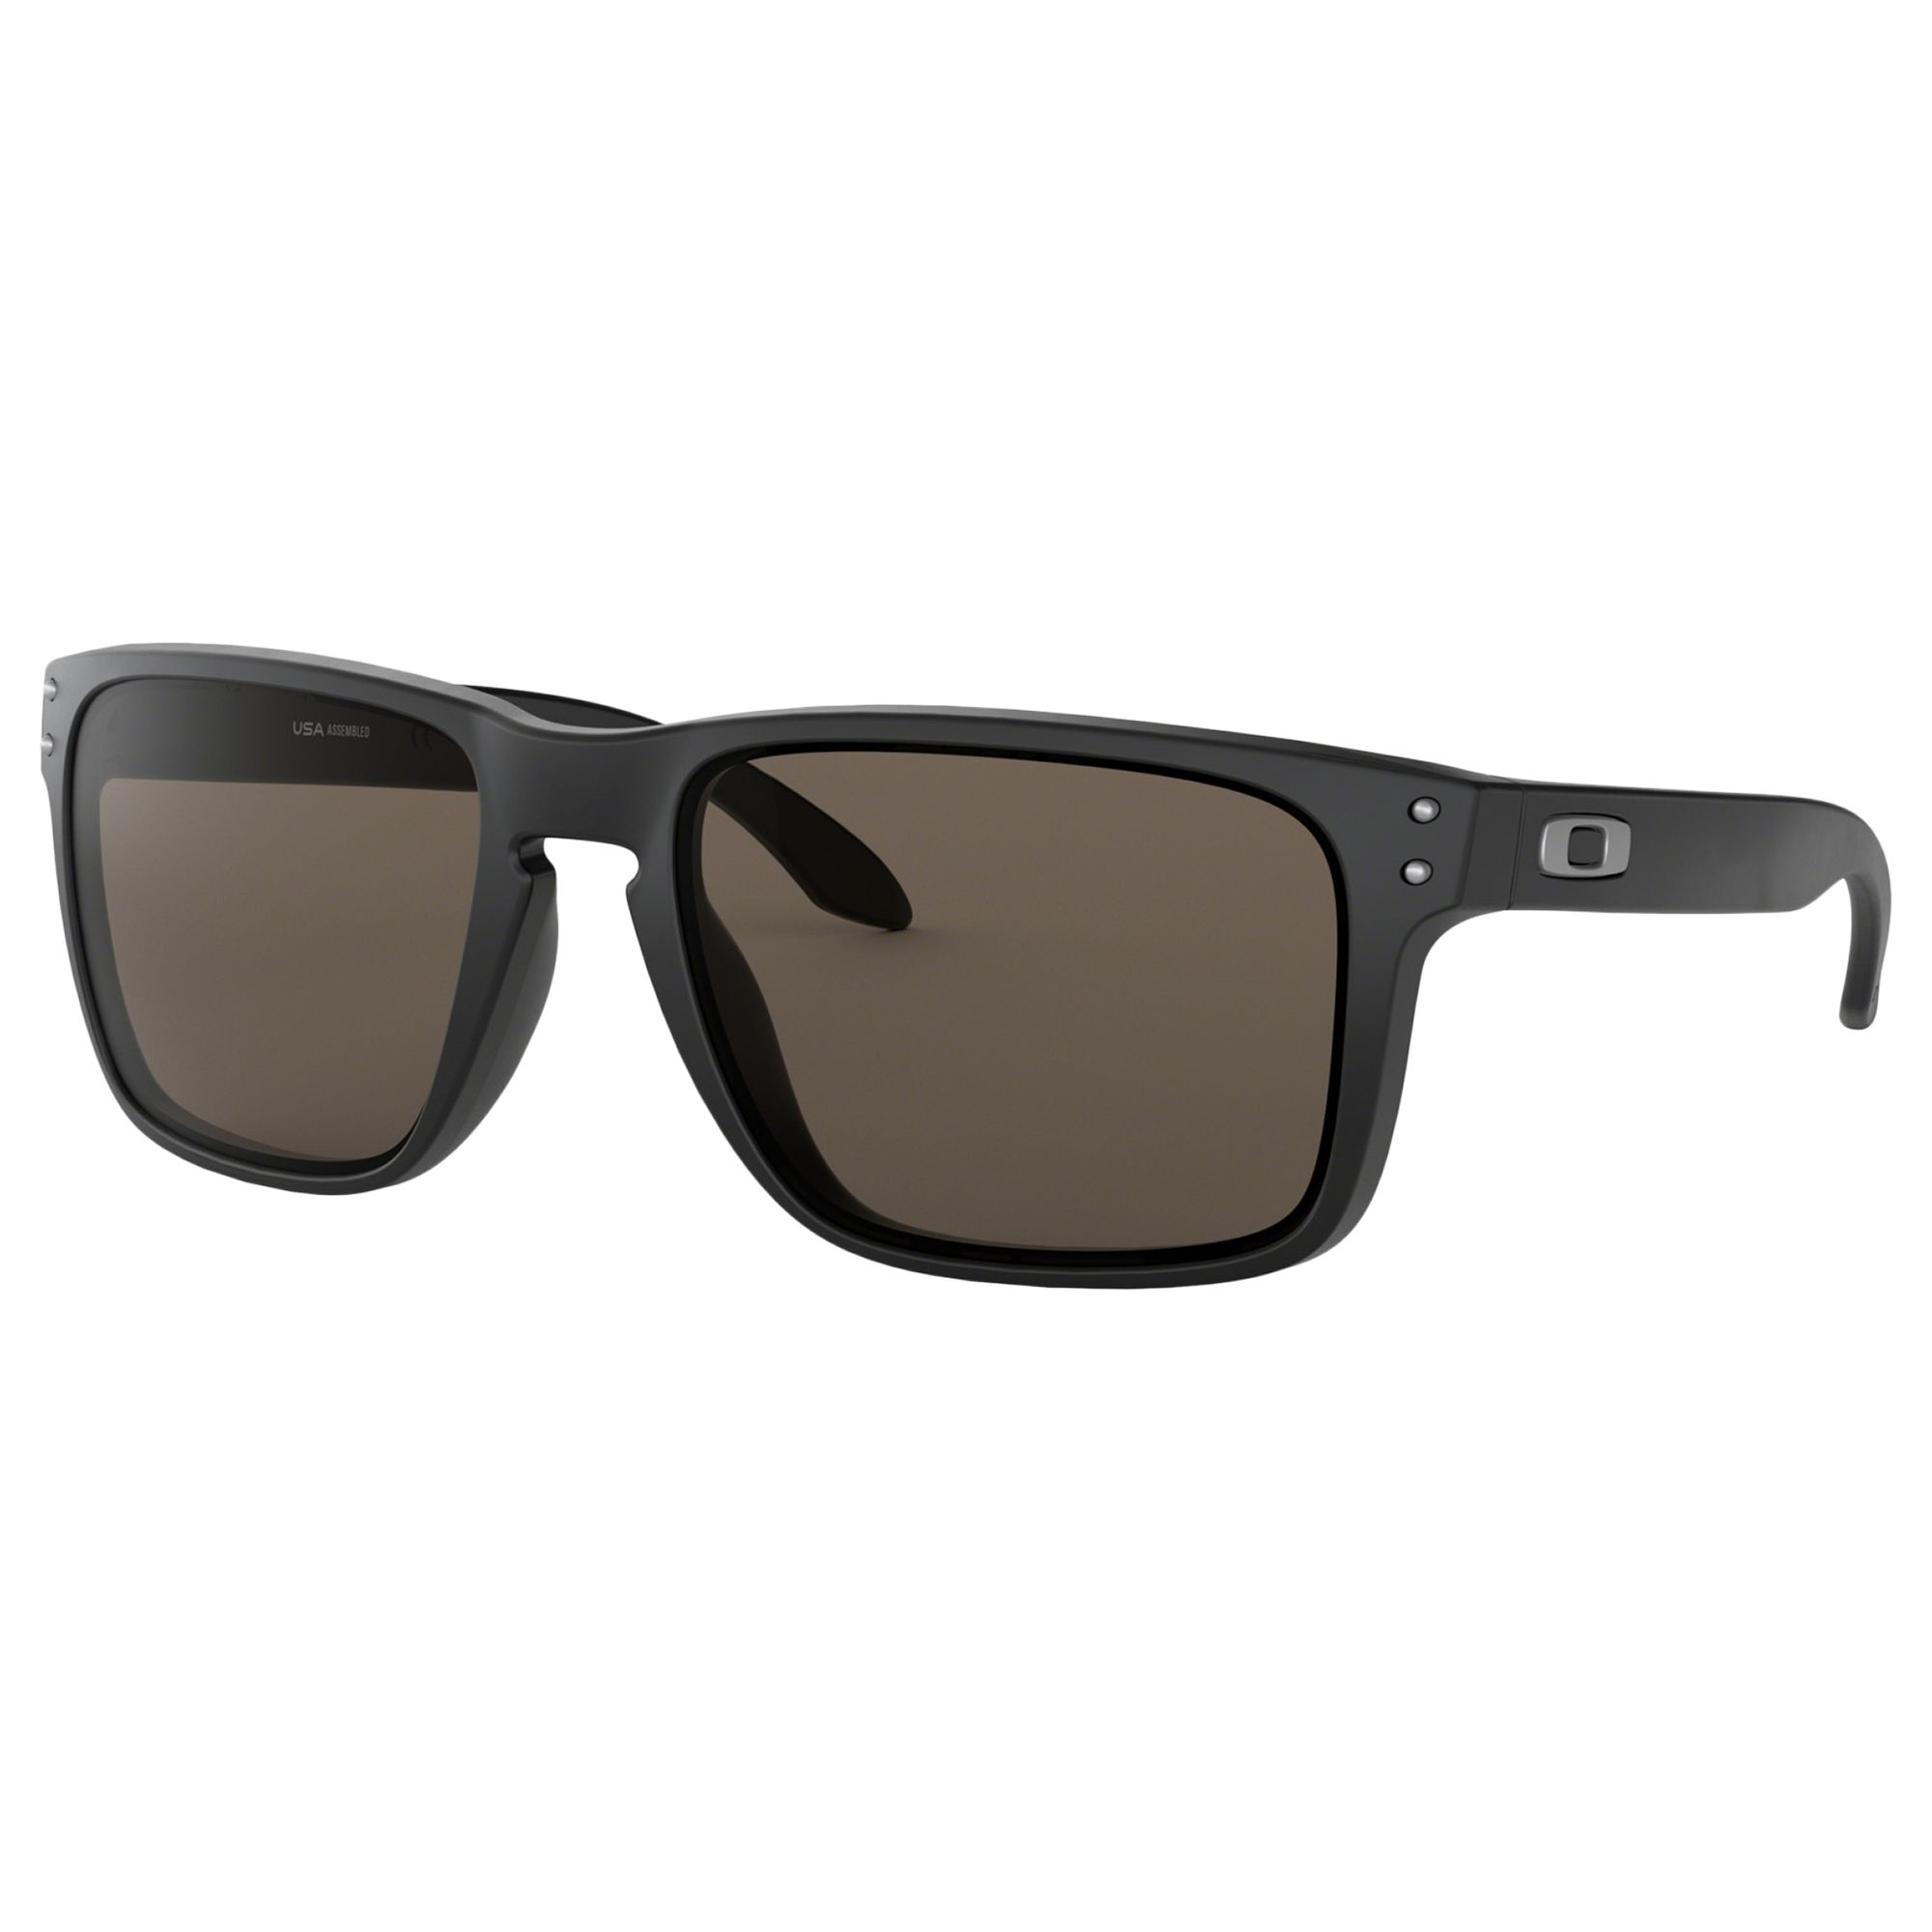 df61bf068f4 Oakley OO9417 Men s Holbrook XL Square Sunglasses at John Lewis   Partners